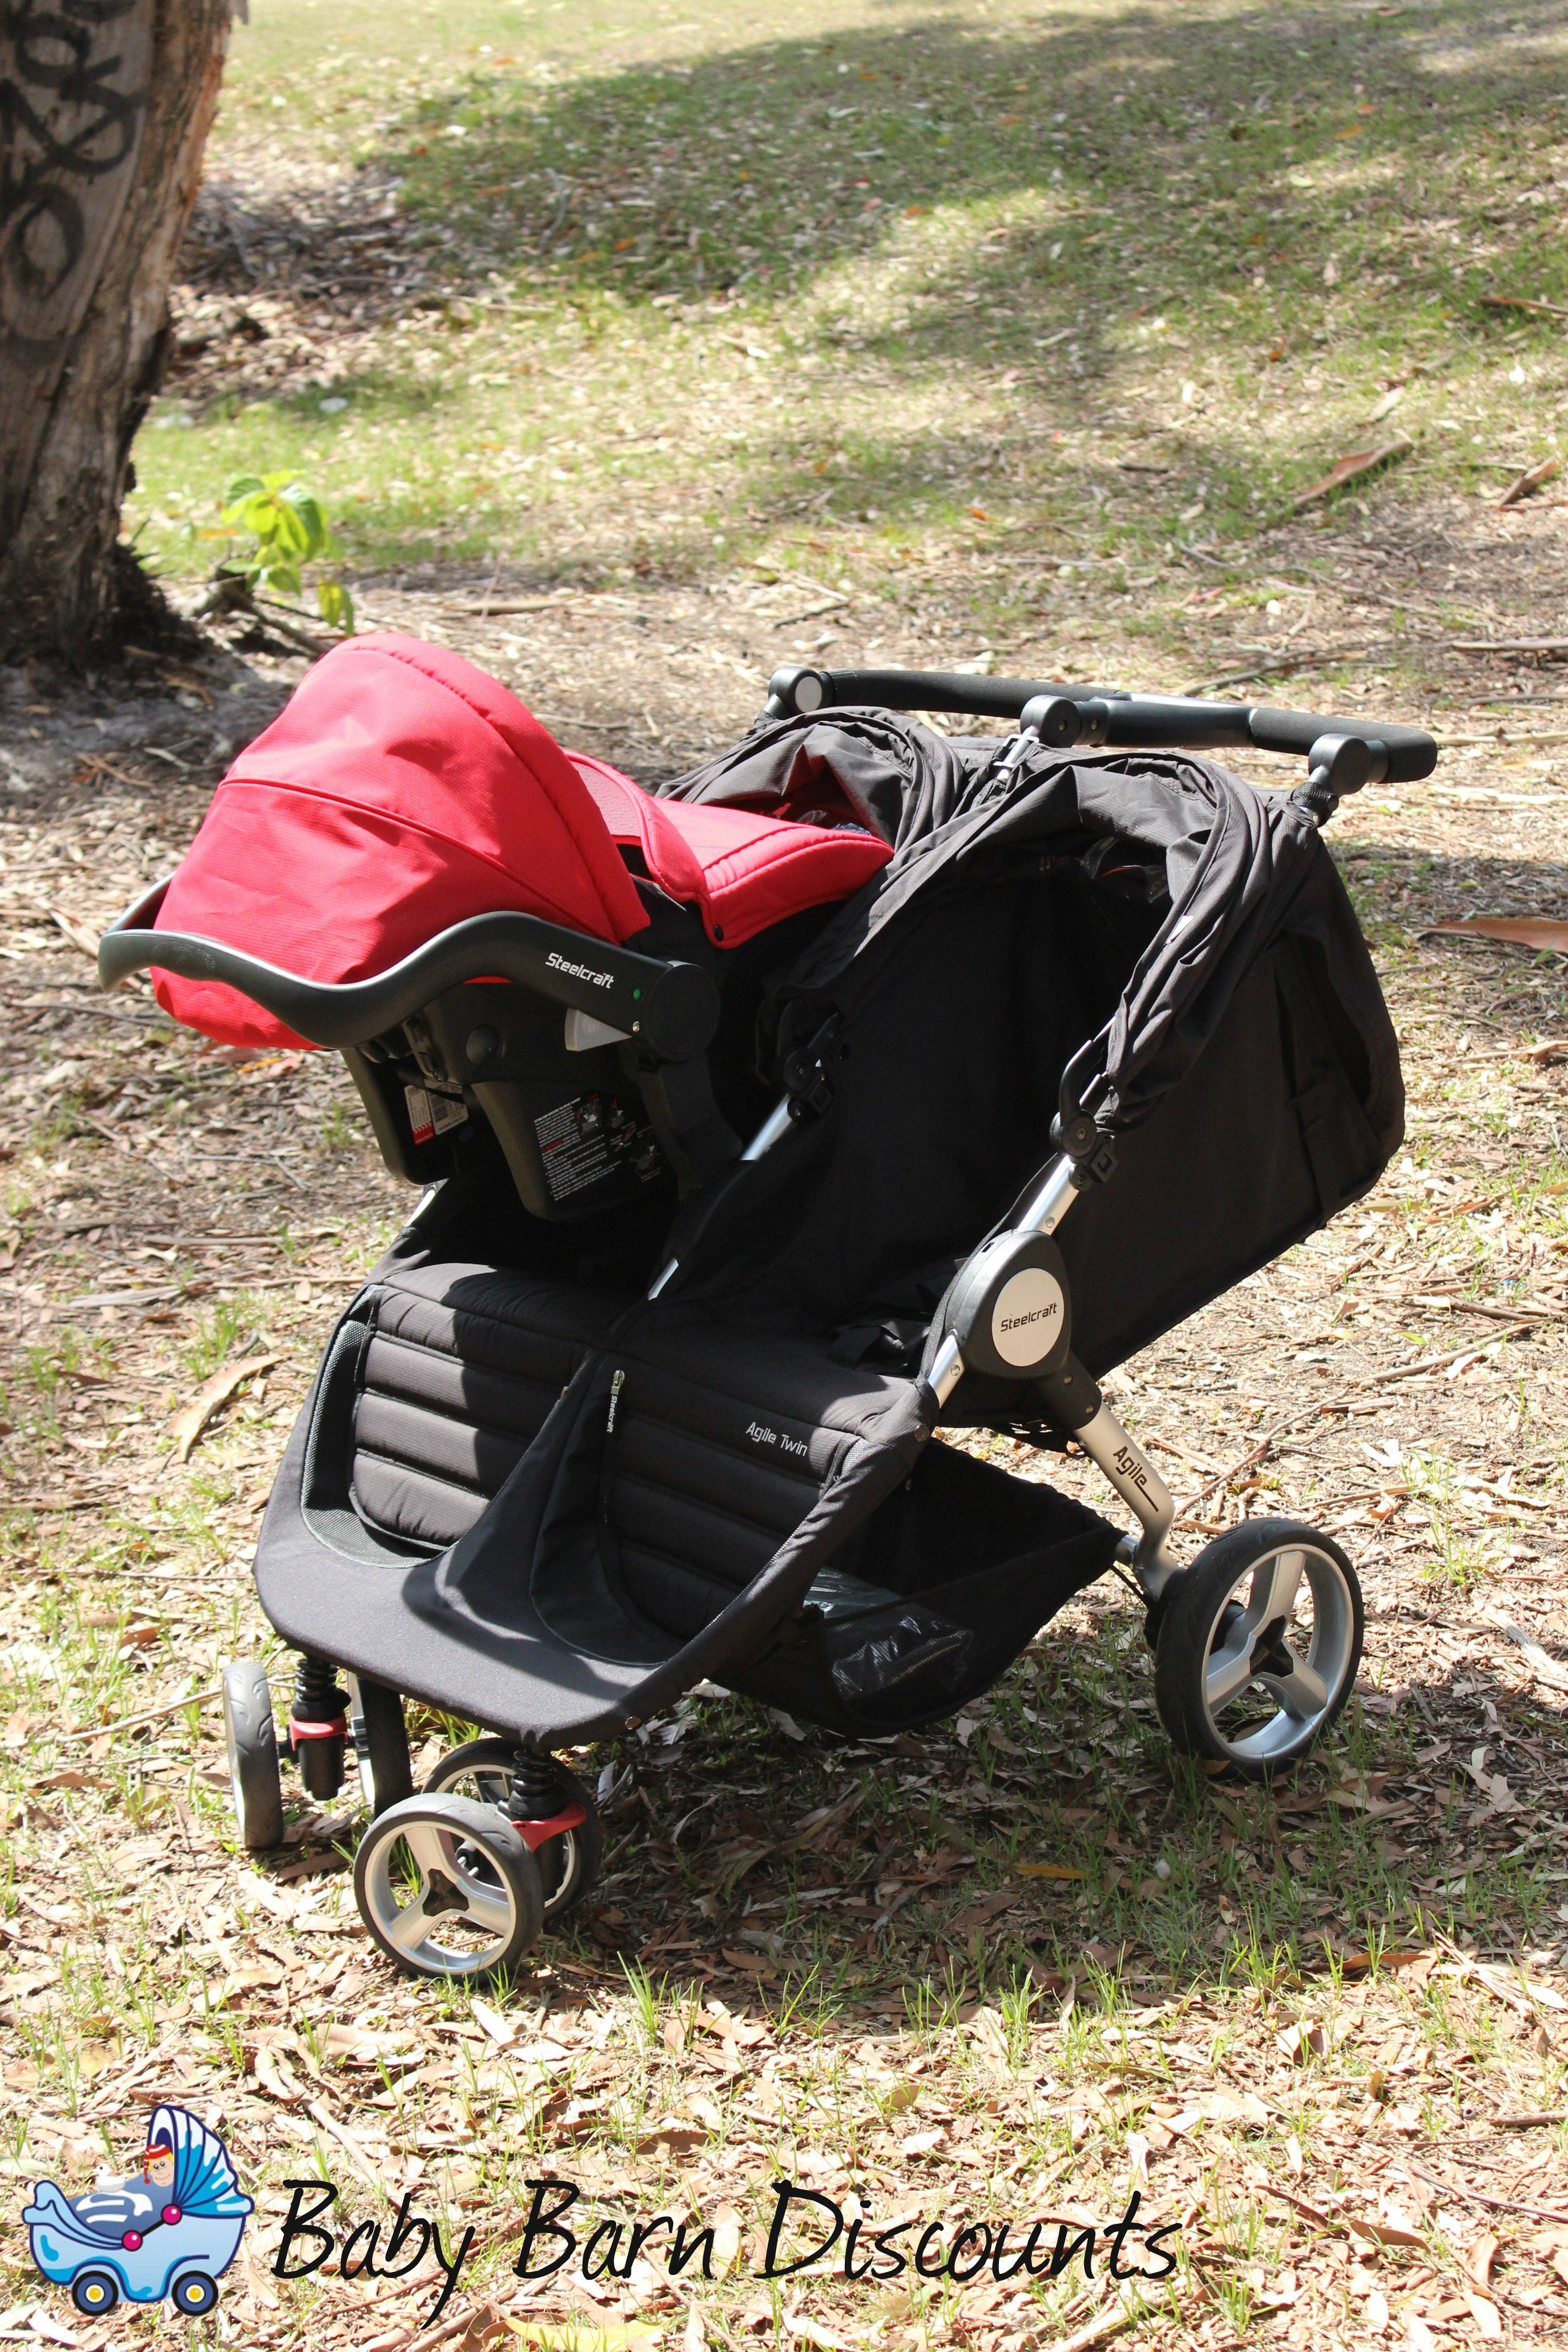 The Steelcraft Agile Twin Travel System Stroller equipped